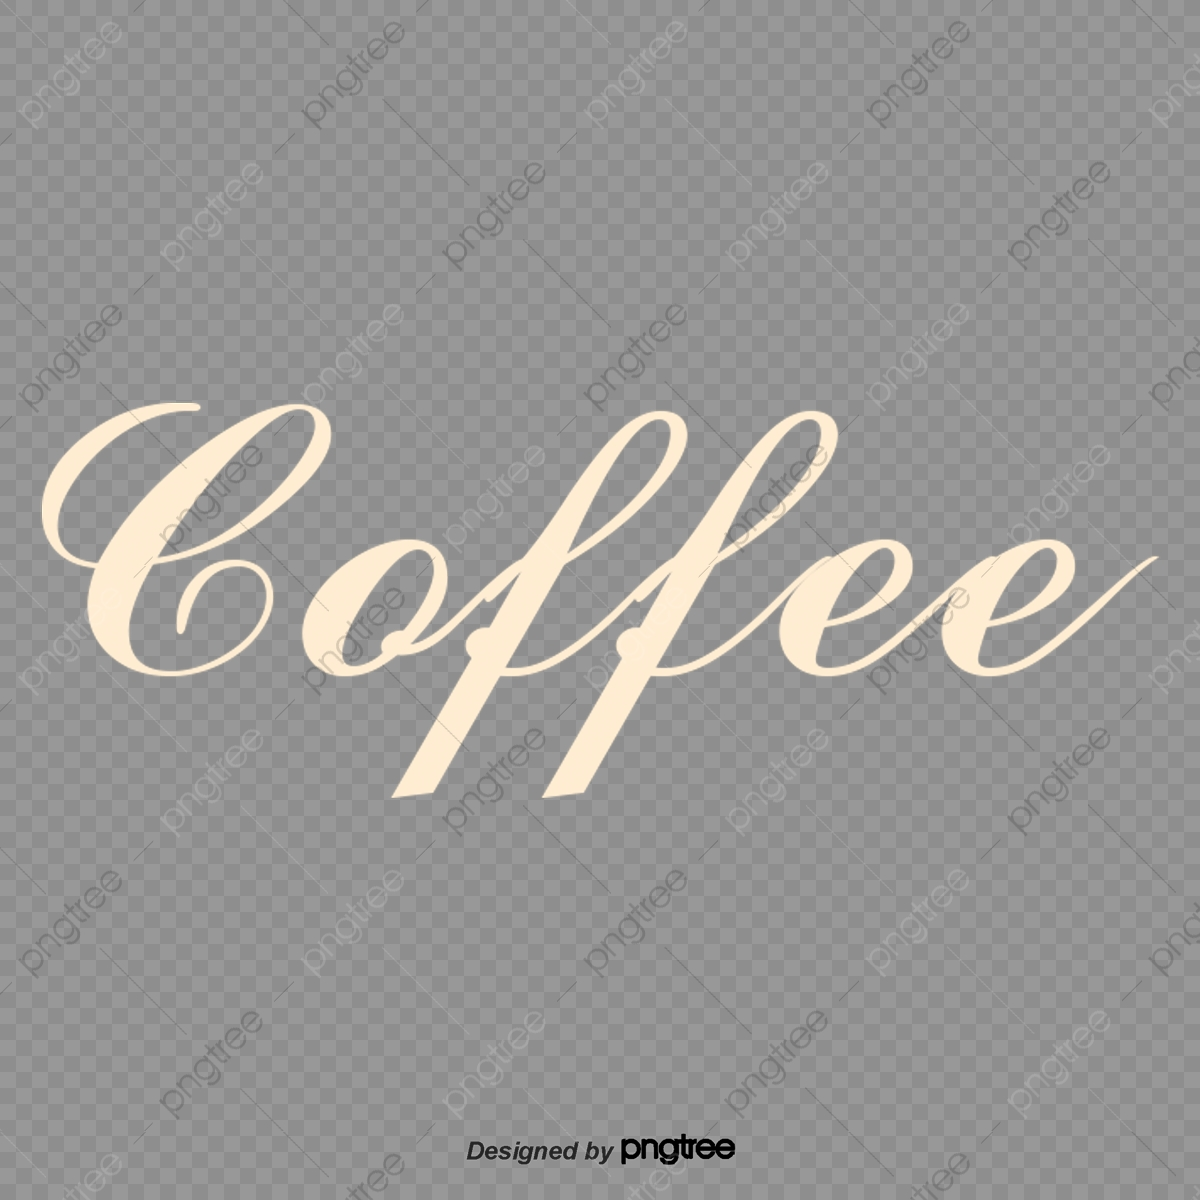 Coffee English Png Vector Psd And Clipart With Transparent Background For Free Download Pngtree